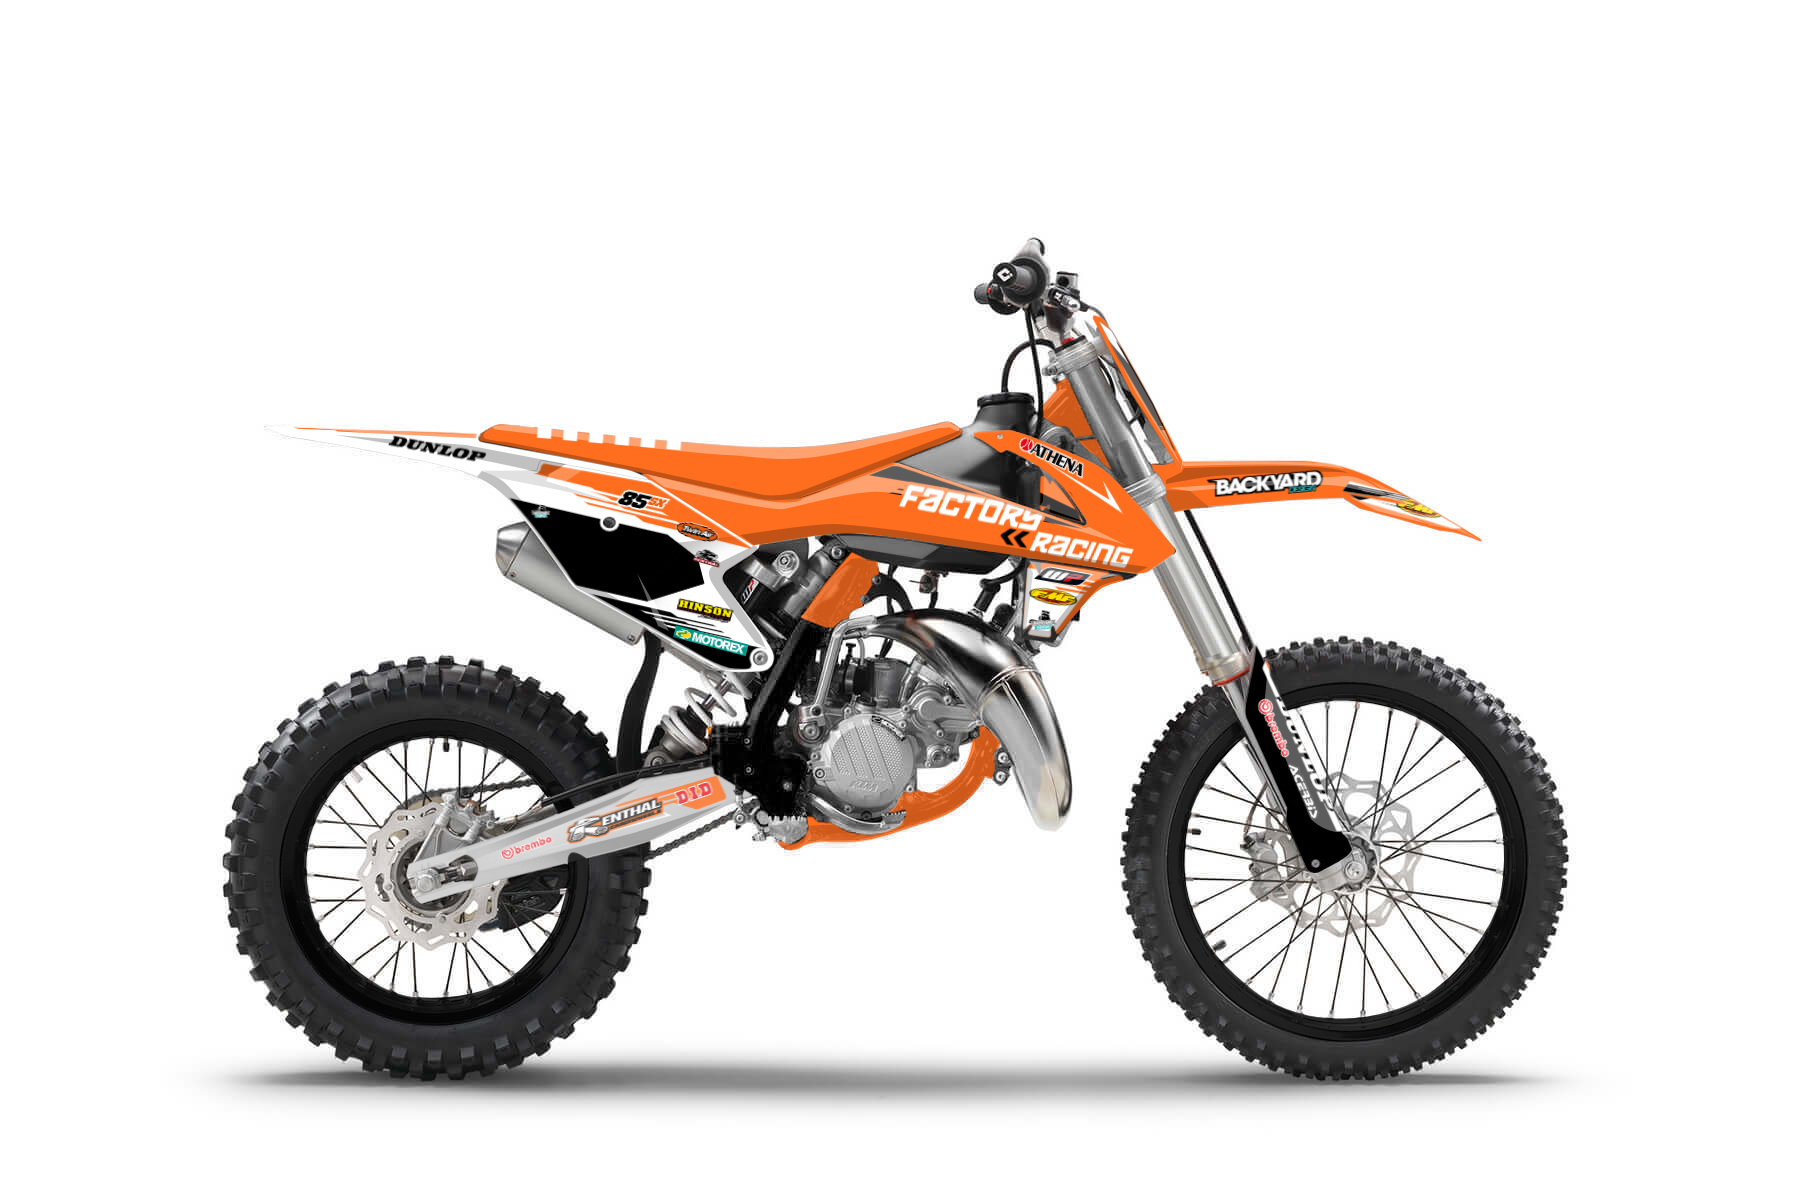 KTM SX 85 MX Graphic Kits  A foolproof handling mixes with everything you need in a beginners bike: enough power to sharpen your technique and a framework that is sturdy and lightweight.